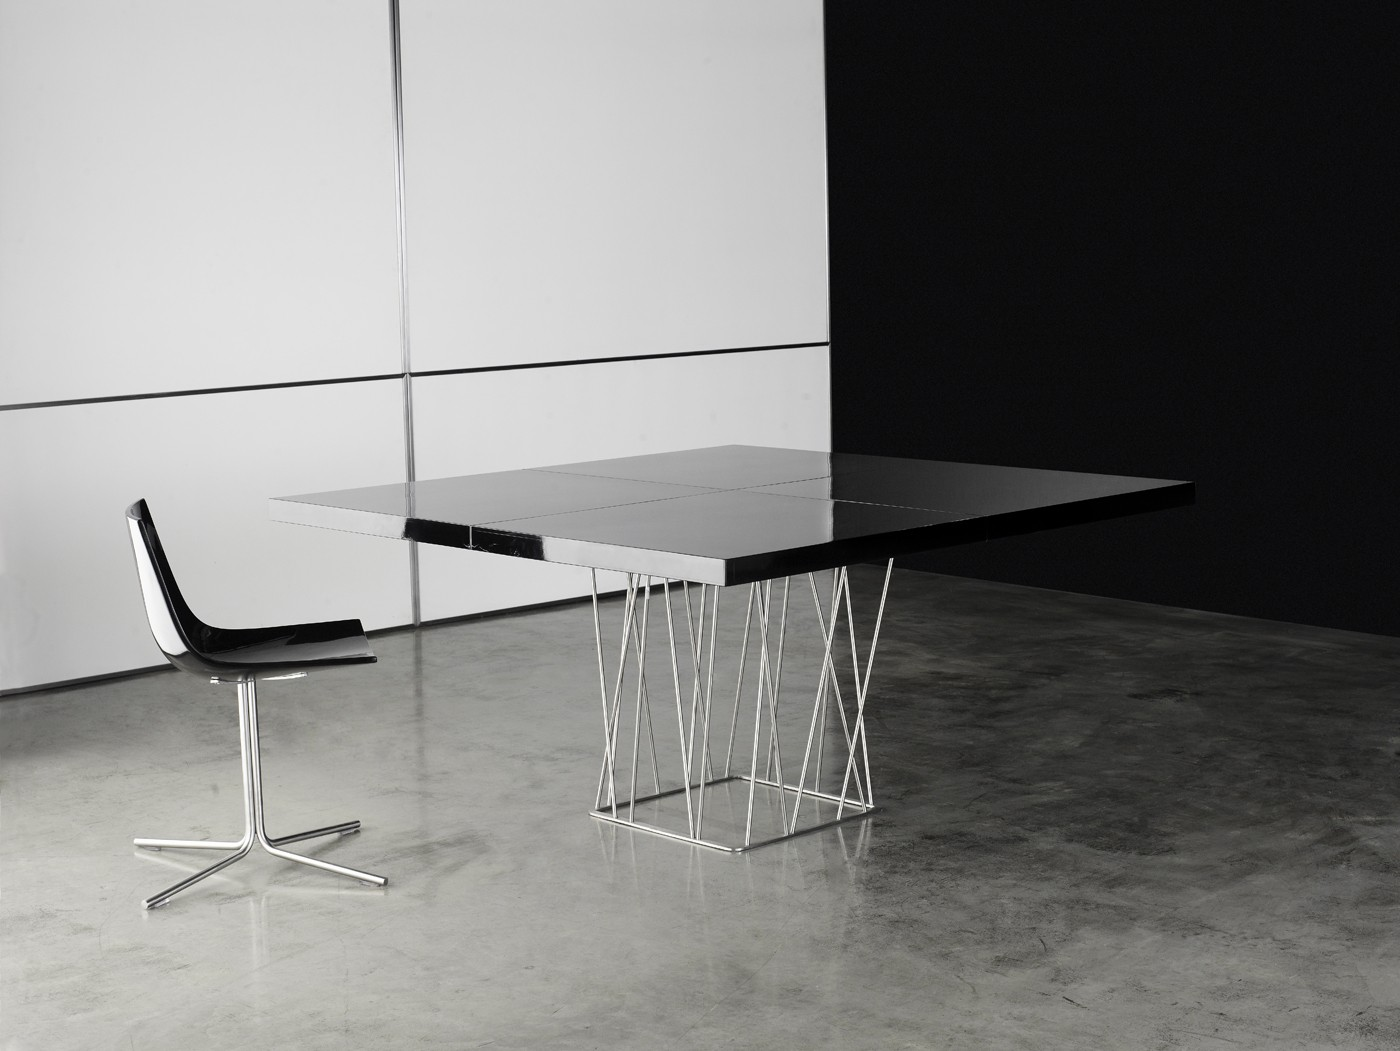 Clarges modern dining table by Modloft